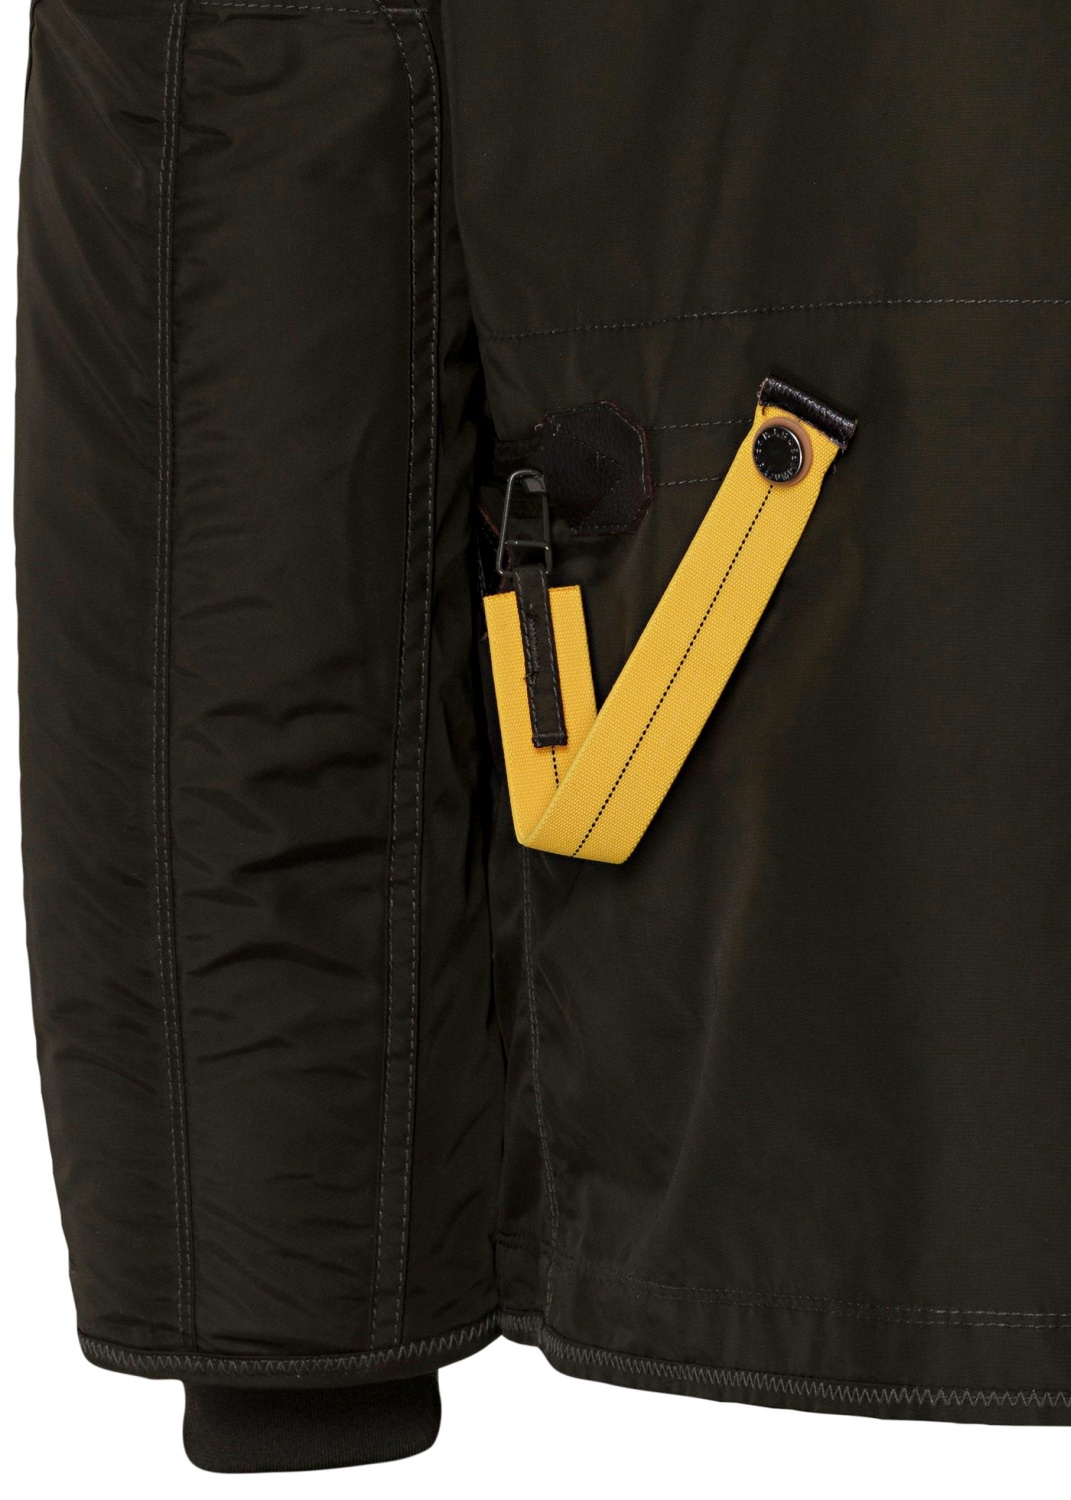 RIGHT HAND BASE - Fieldjacket image number 3